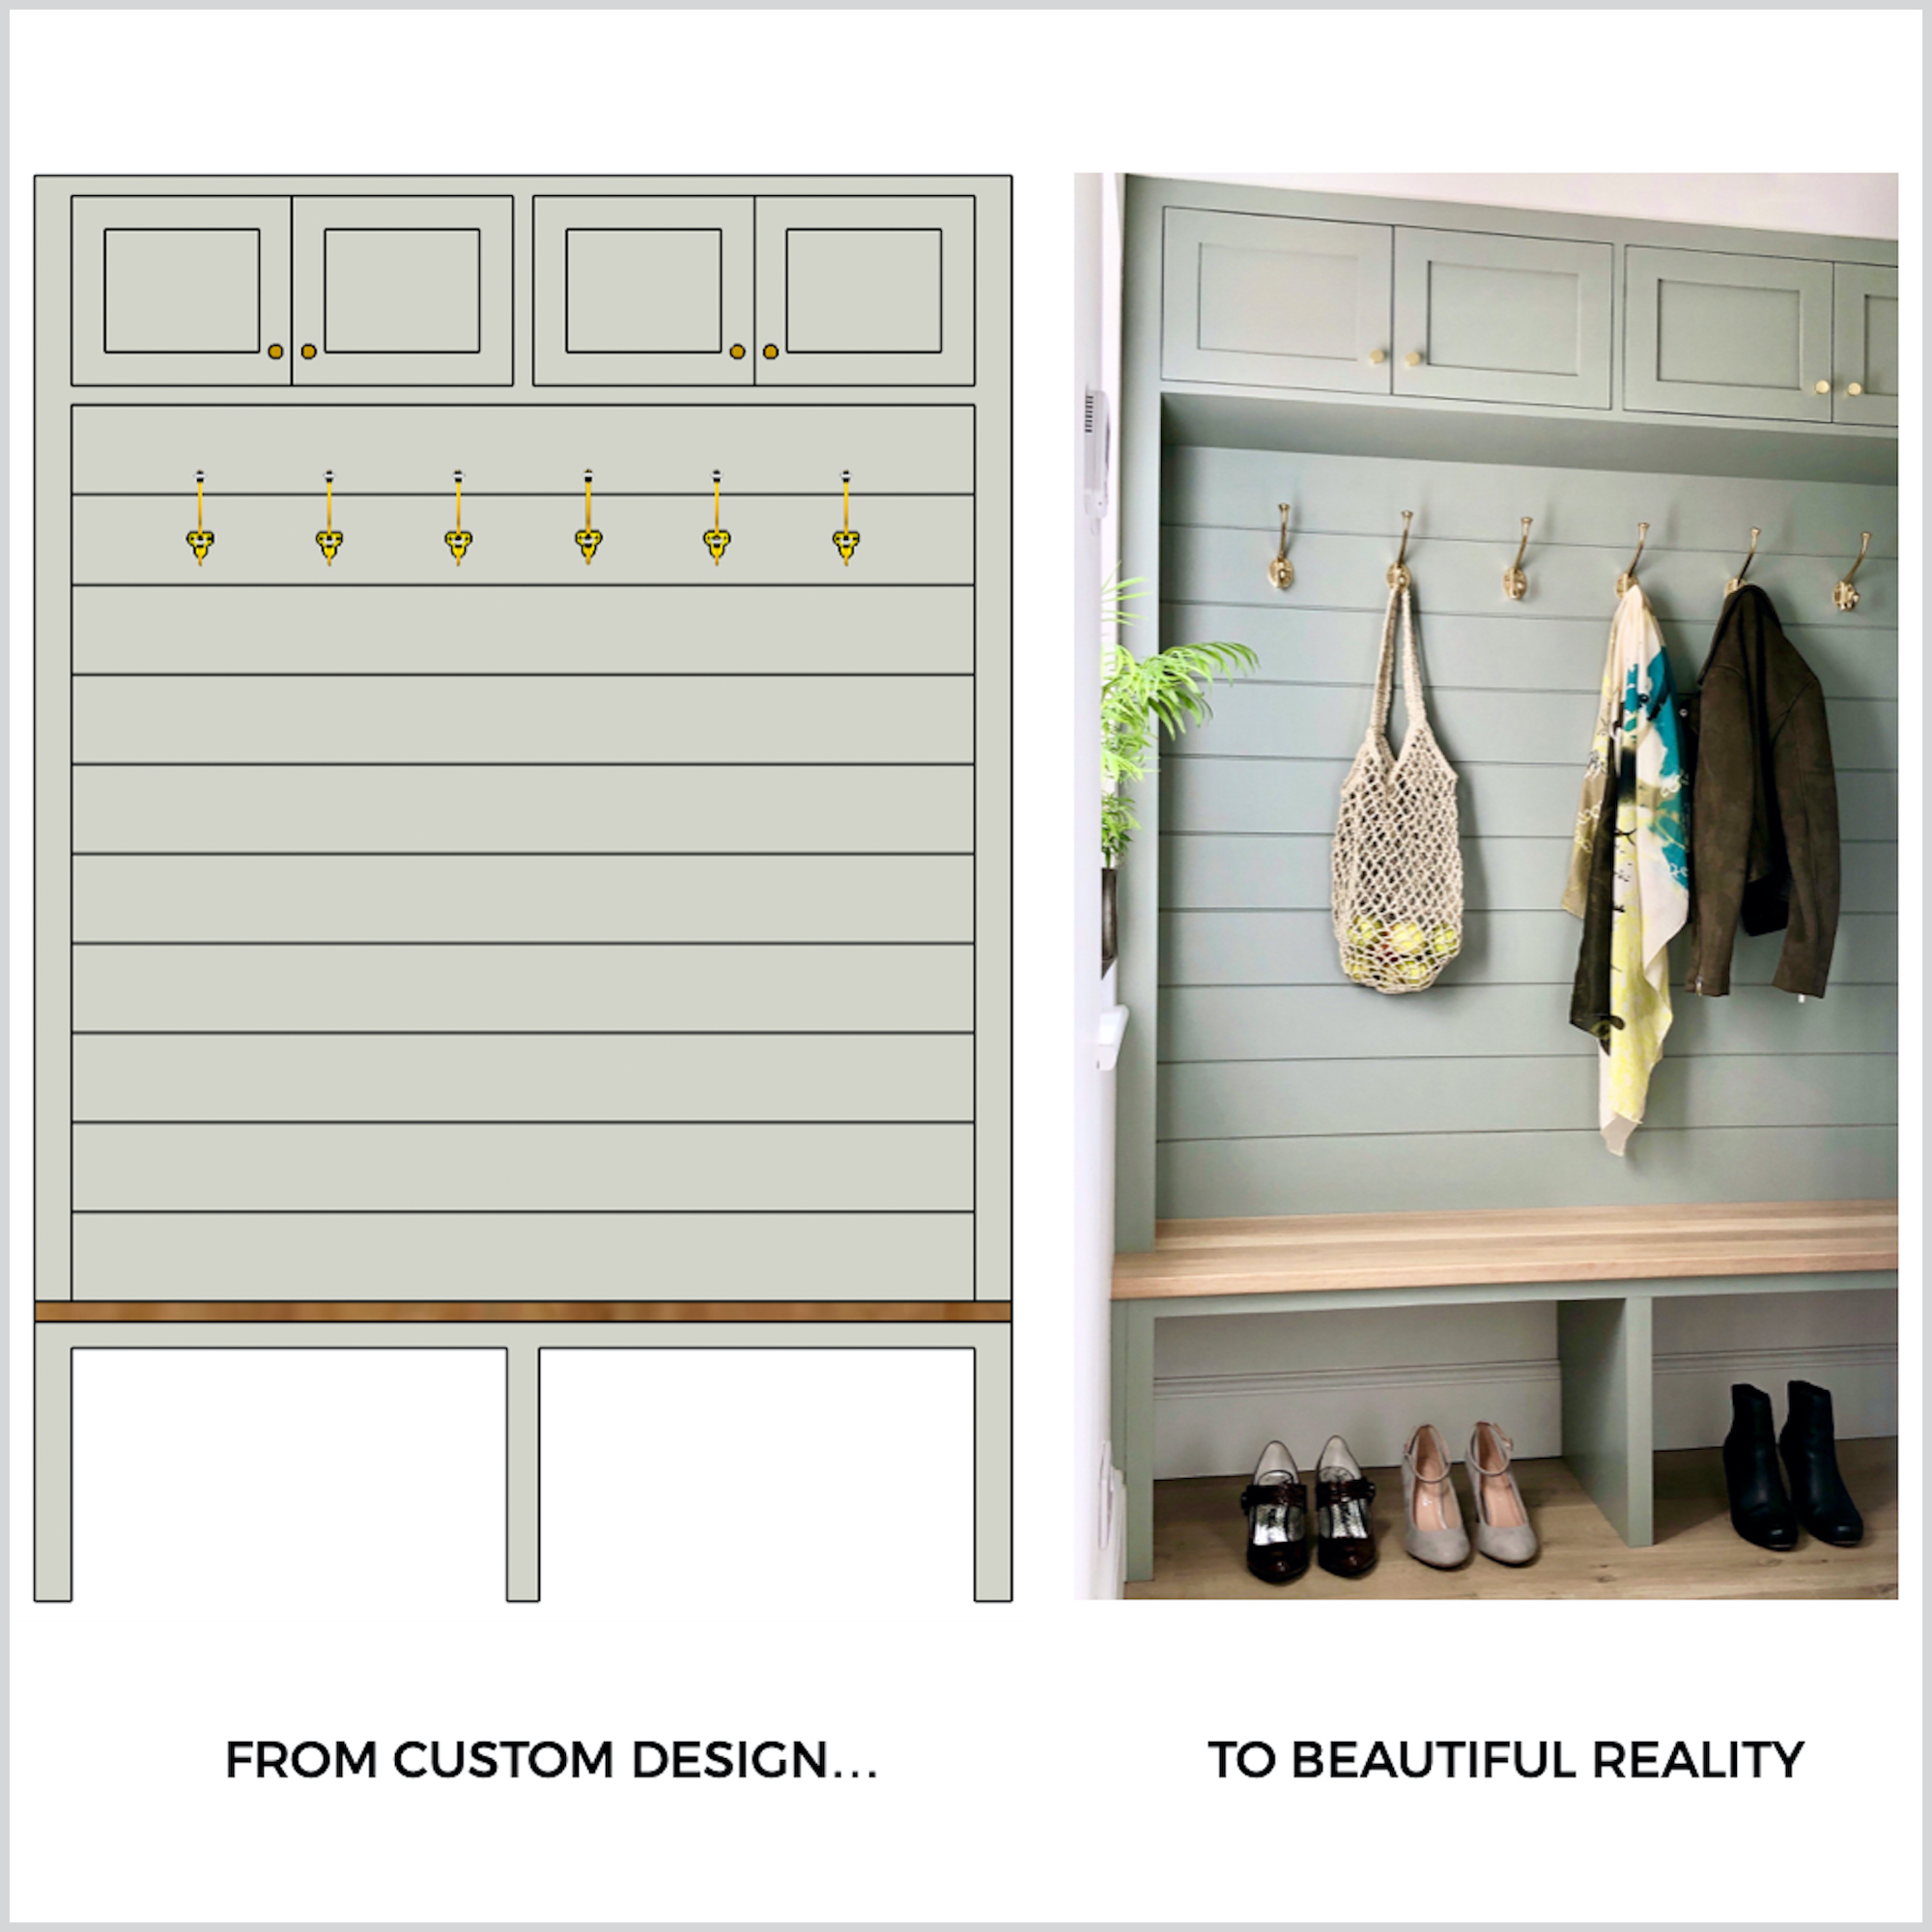 Bespoke furniture design and joinery - First Sense Interiors